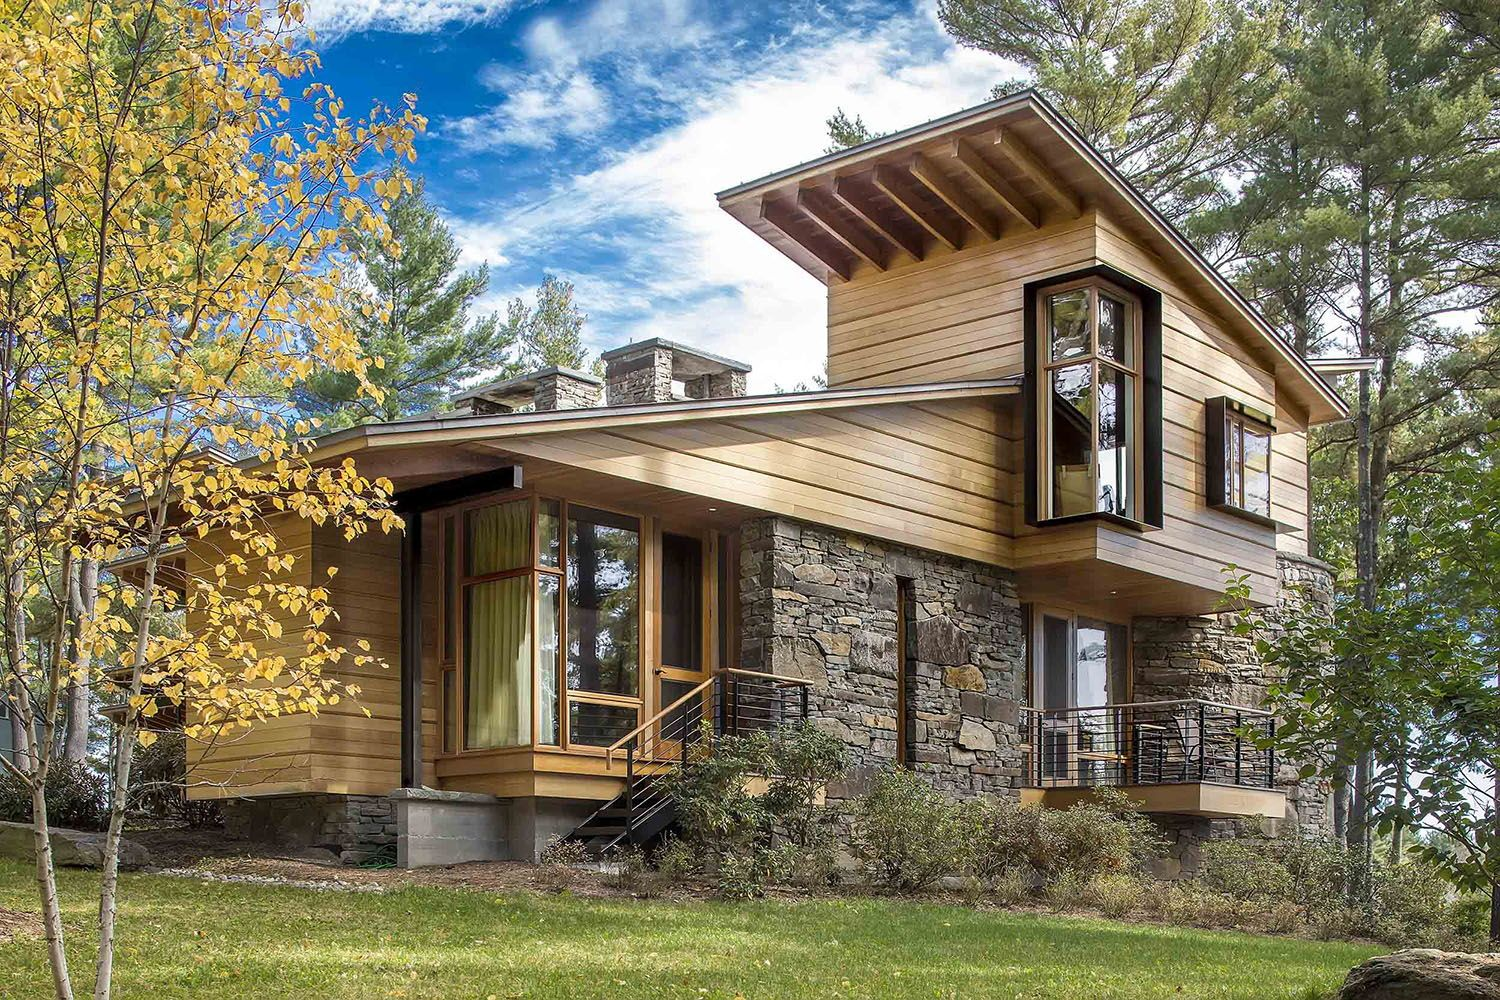 Rustic Modern House Organically Forms Into Hillside In The Berkshires In 2020 Country House Design Rural House Modern House